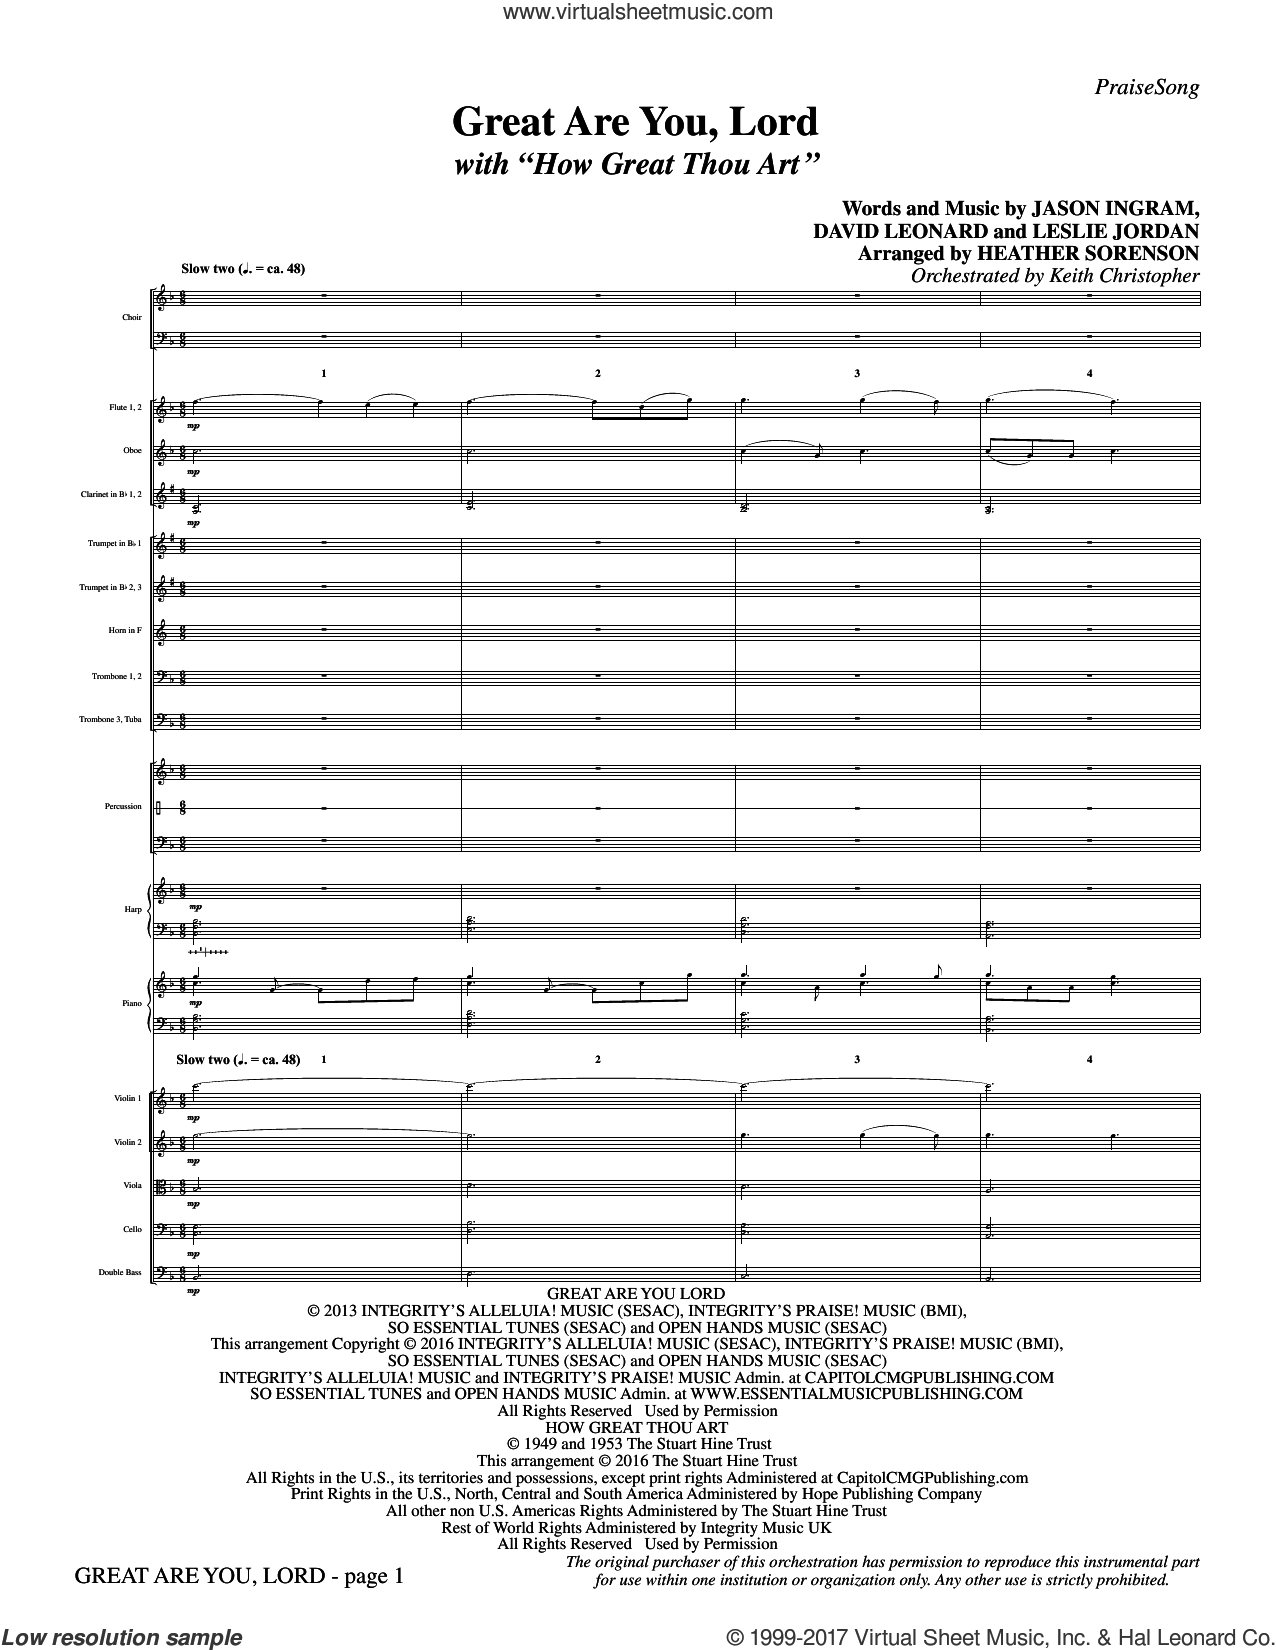 Great Are You Lord (with How Great Thou Art) (COMPLETE) sheet music for orchestra/band by Heather Sorenson, All Sons and Daughters, Casting Crowns, David Leonard, Jason Ingram, Leslie Jordan, One Sonic Society and Stuart K. Hine, intermediate skill level